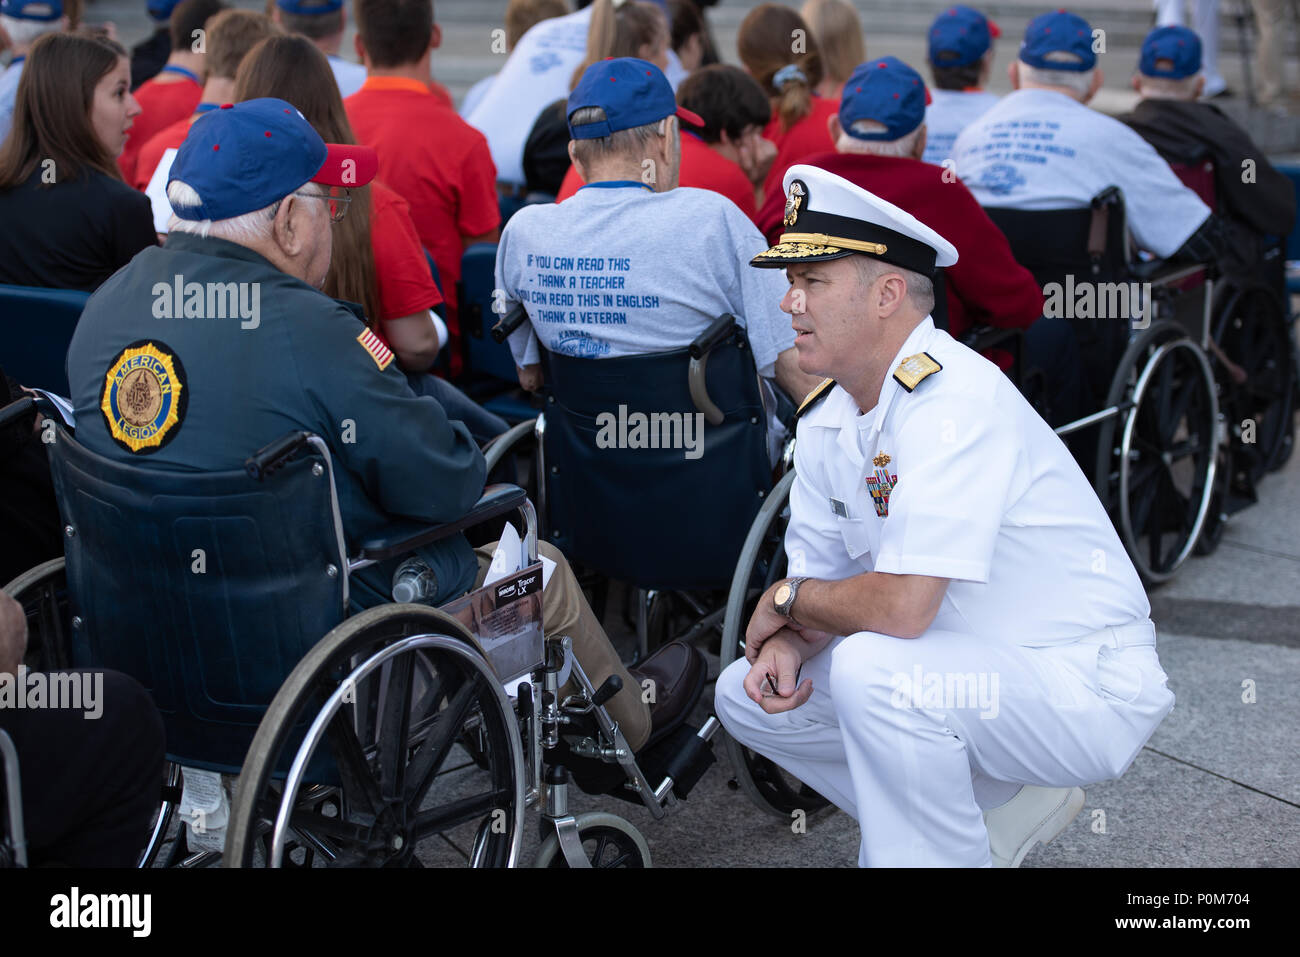 180605-N-HG258-1009 WASHINGTON (June 5, 2018) Rear Adm. Ronald Boxall meets with members of an Honor Flight from Kansas at the U.S. Navy Memorial in Washington, D.C., before the commemoration of the 76th anniversary of the Battle of Midway. The Battle of Midway began on June 4 in 1942 and stands as one of the U.S. Navy's most historically significant naval battles. Fought on the high seas of the Pacific more than half a century ago, this battle altered the course of the war in the Pacific and thereby shaped the outcome of world events. (U.S. Navy photo by Senior Chief Musician Stephen Hassay/R - Stock Image